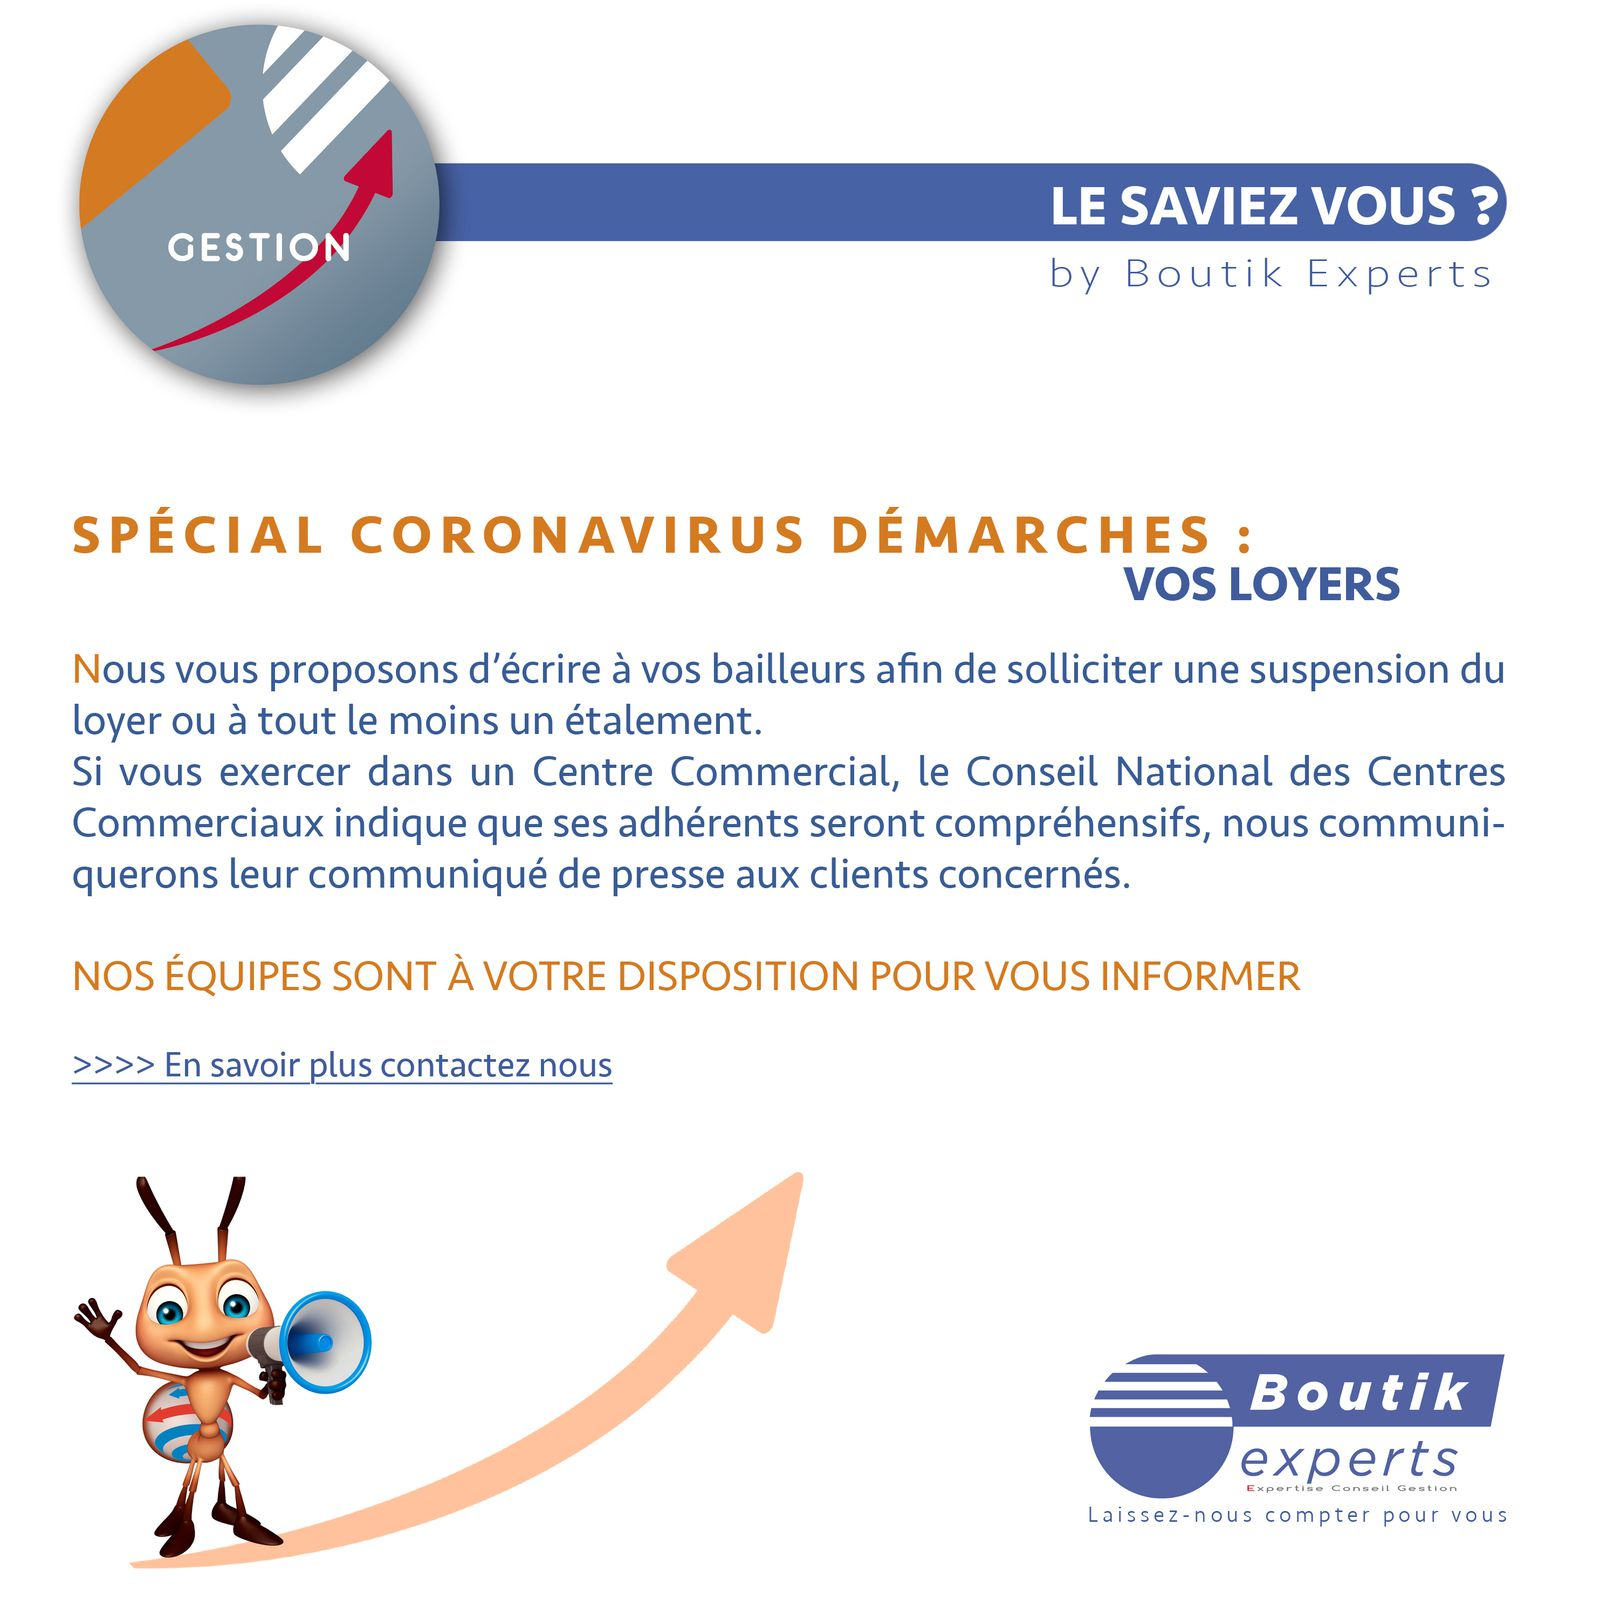 SPÉCIAL COVID-19 : VOS LOYERS